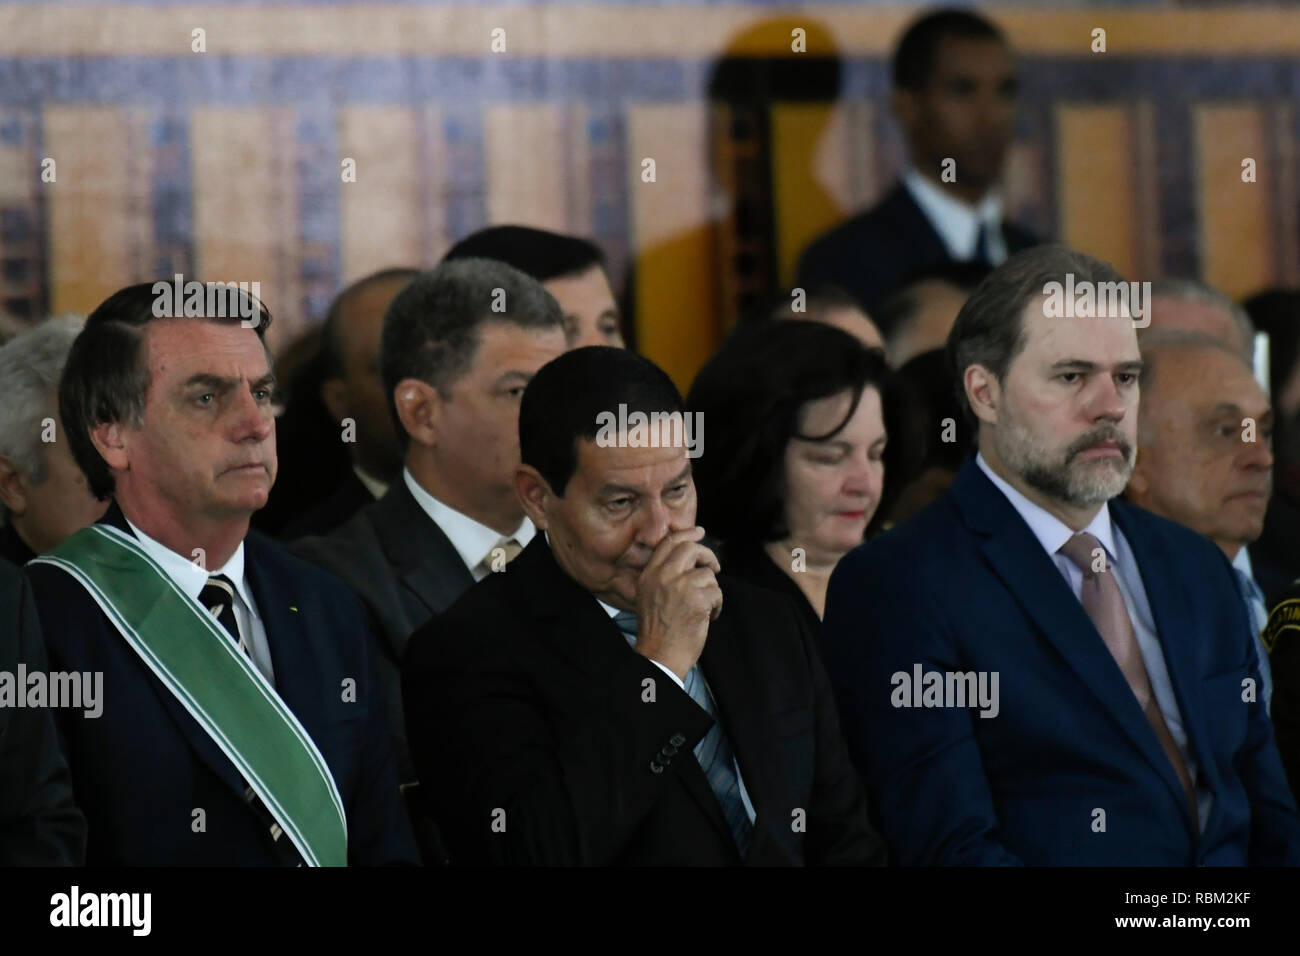 The President of the Republic, Jair Bolsonaro, President of the Republic, accompanied by General Hamilton Mourao, Vice President of the Republic, and Dias Toffoli, President of the STF, on Friday, January 11, during solemnity of passage of the general command of the army of the Army General Eduardo Dias da Costa Villas Boas to the Army General Edson Leal Pujol in a ceremony held in the Club of the Army. Photo: Mateus Bonomi / AGIF - Stock Image